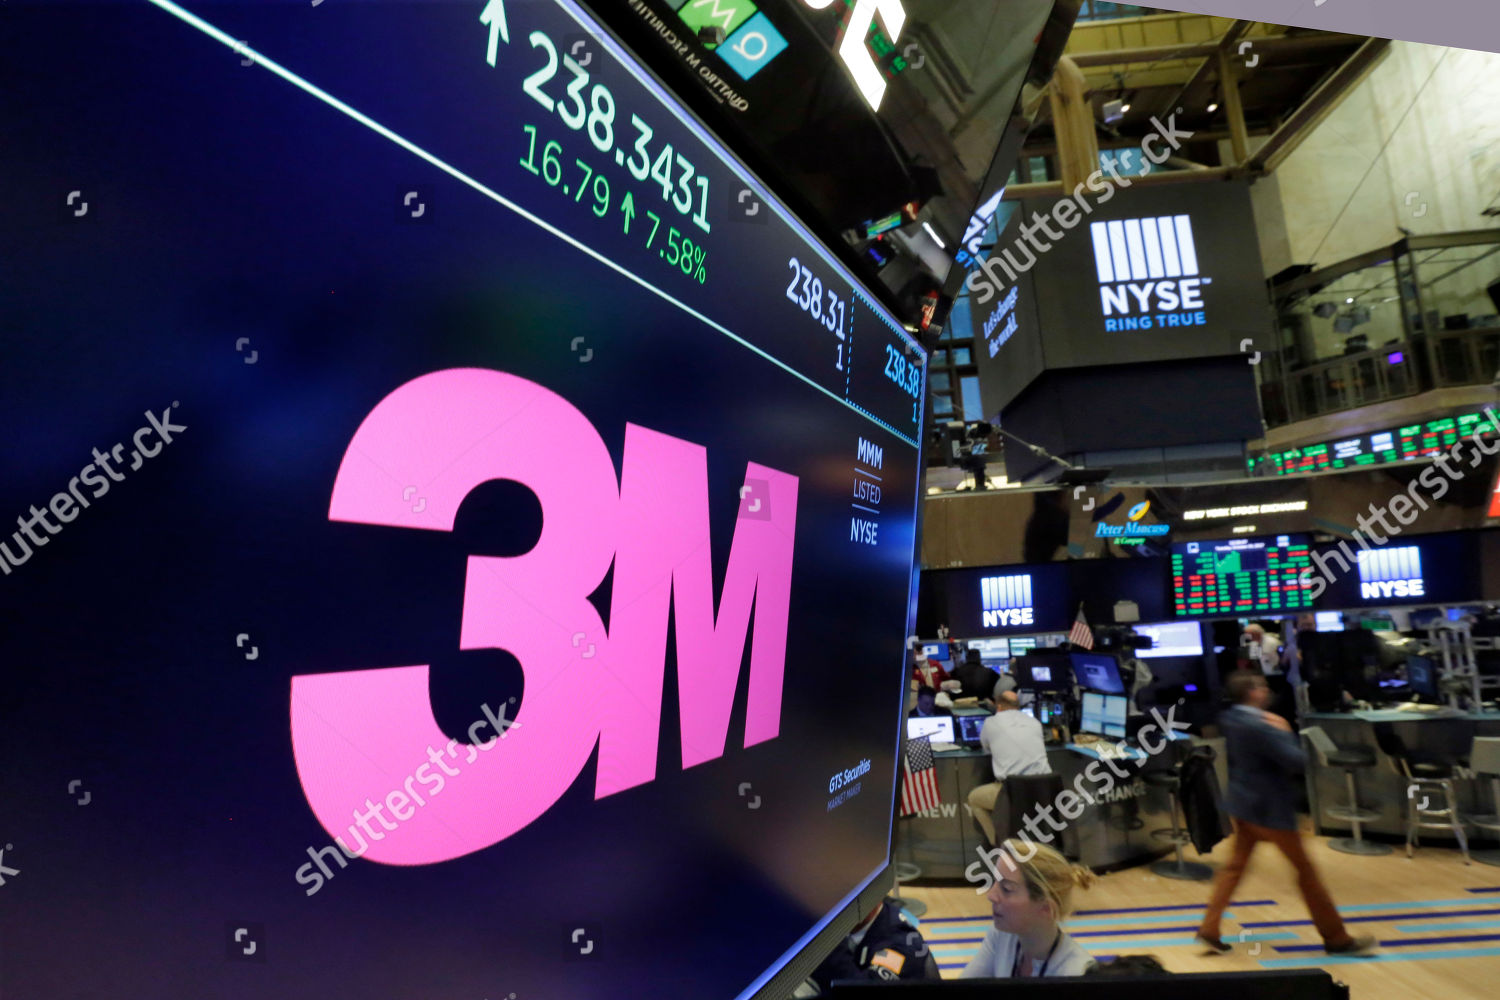 logo 3M appears on screen above trading Editorial Stock Photo